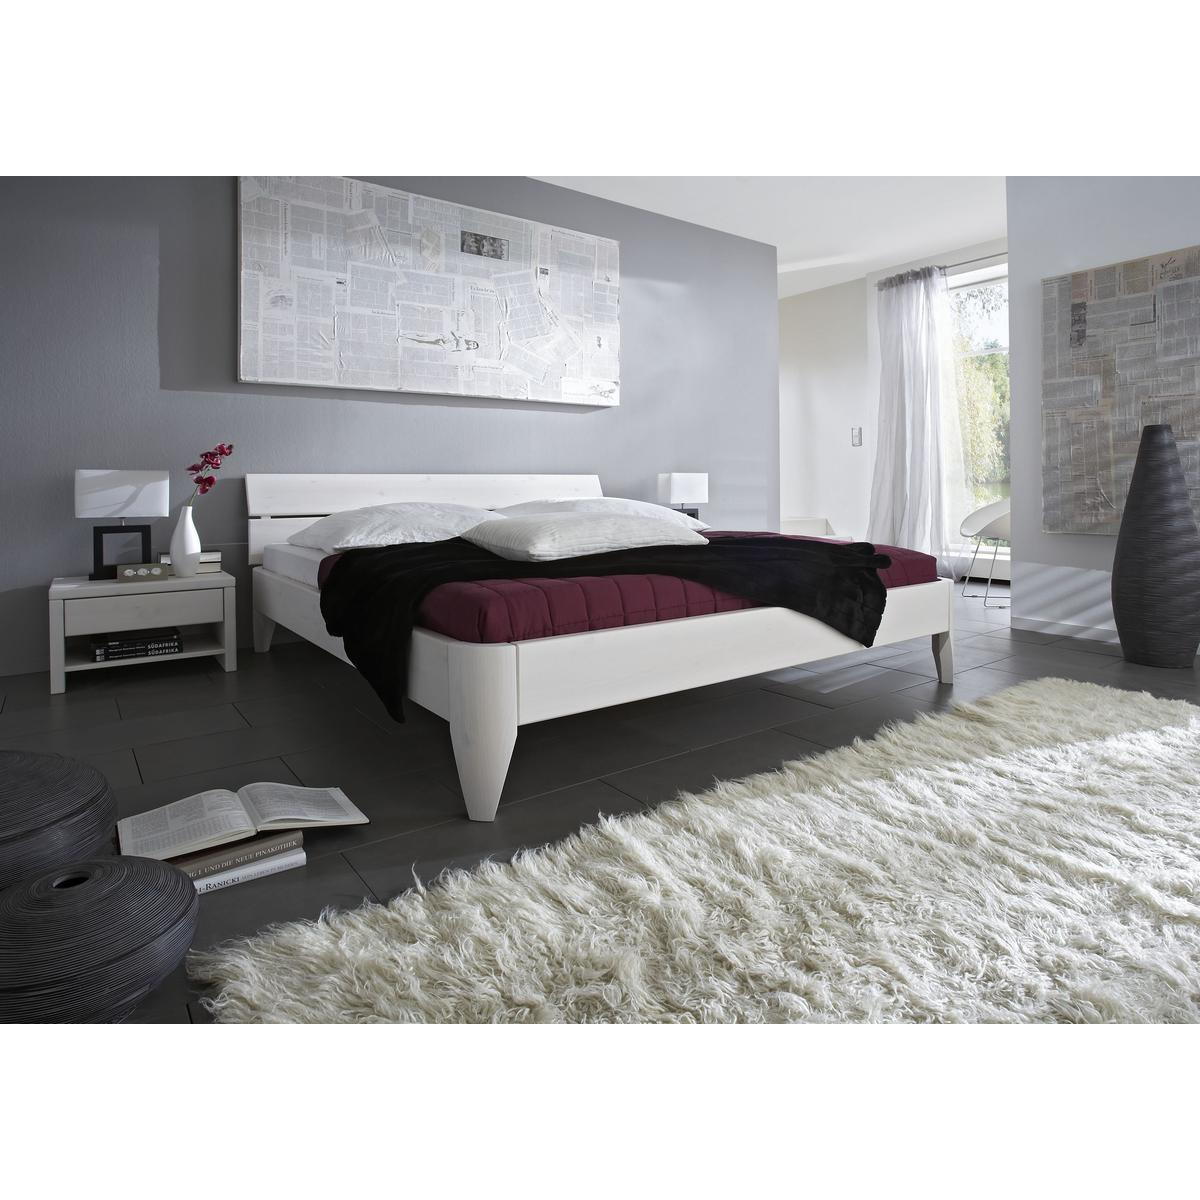 massivholz bett 100x200 easy sleep kiefer massiv wei lackiert 9210 72 0. Black Bedroom Furniture Sets. Home Design Ideas